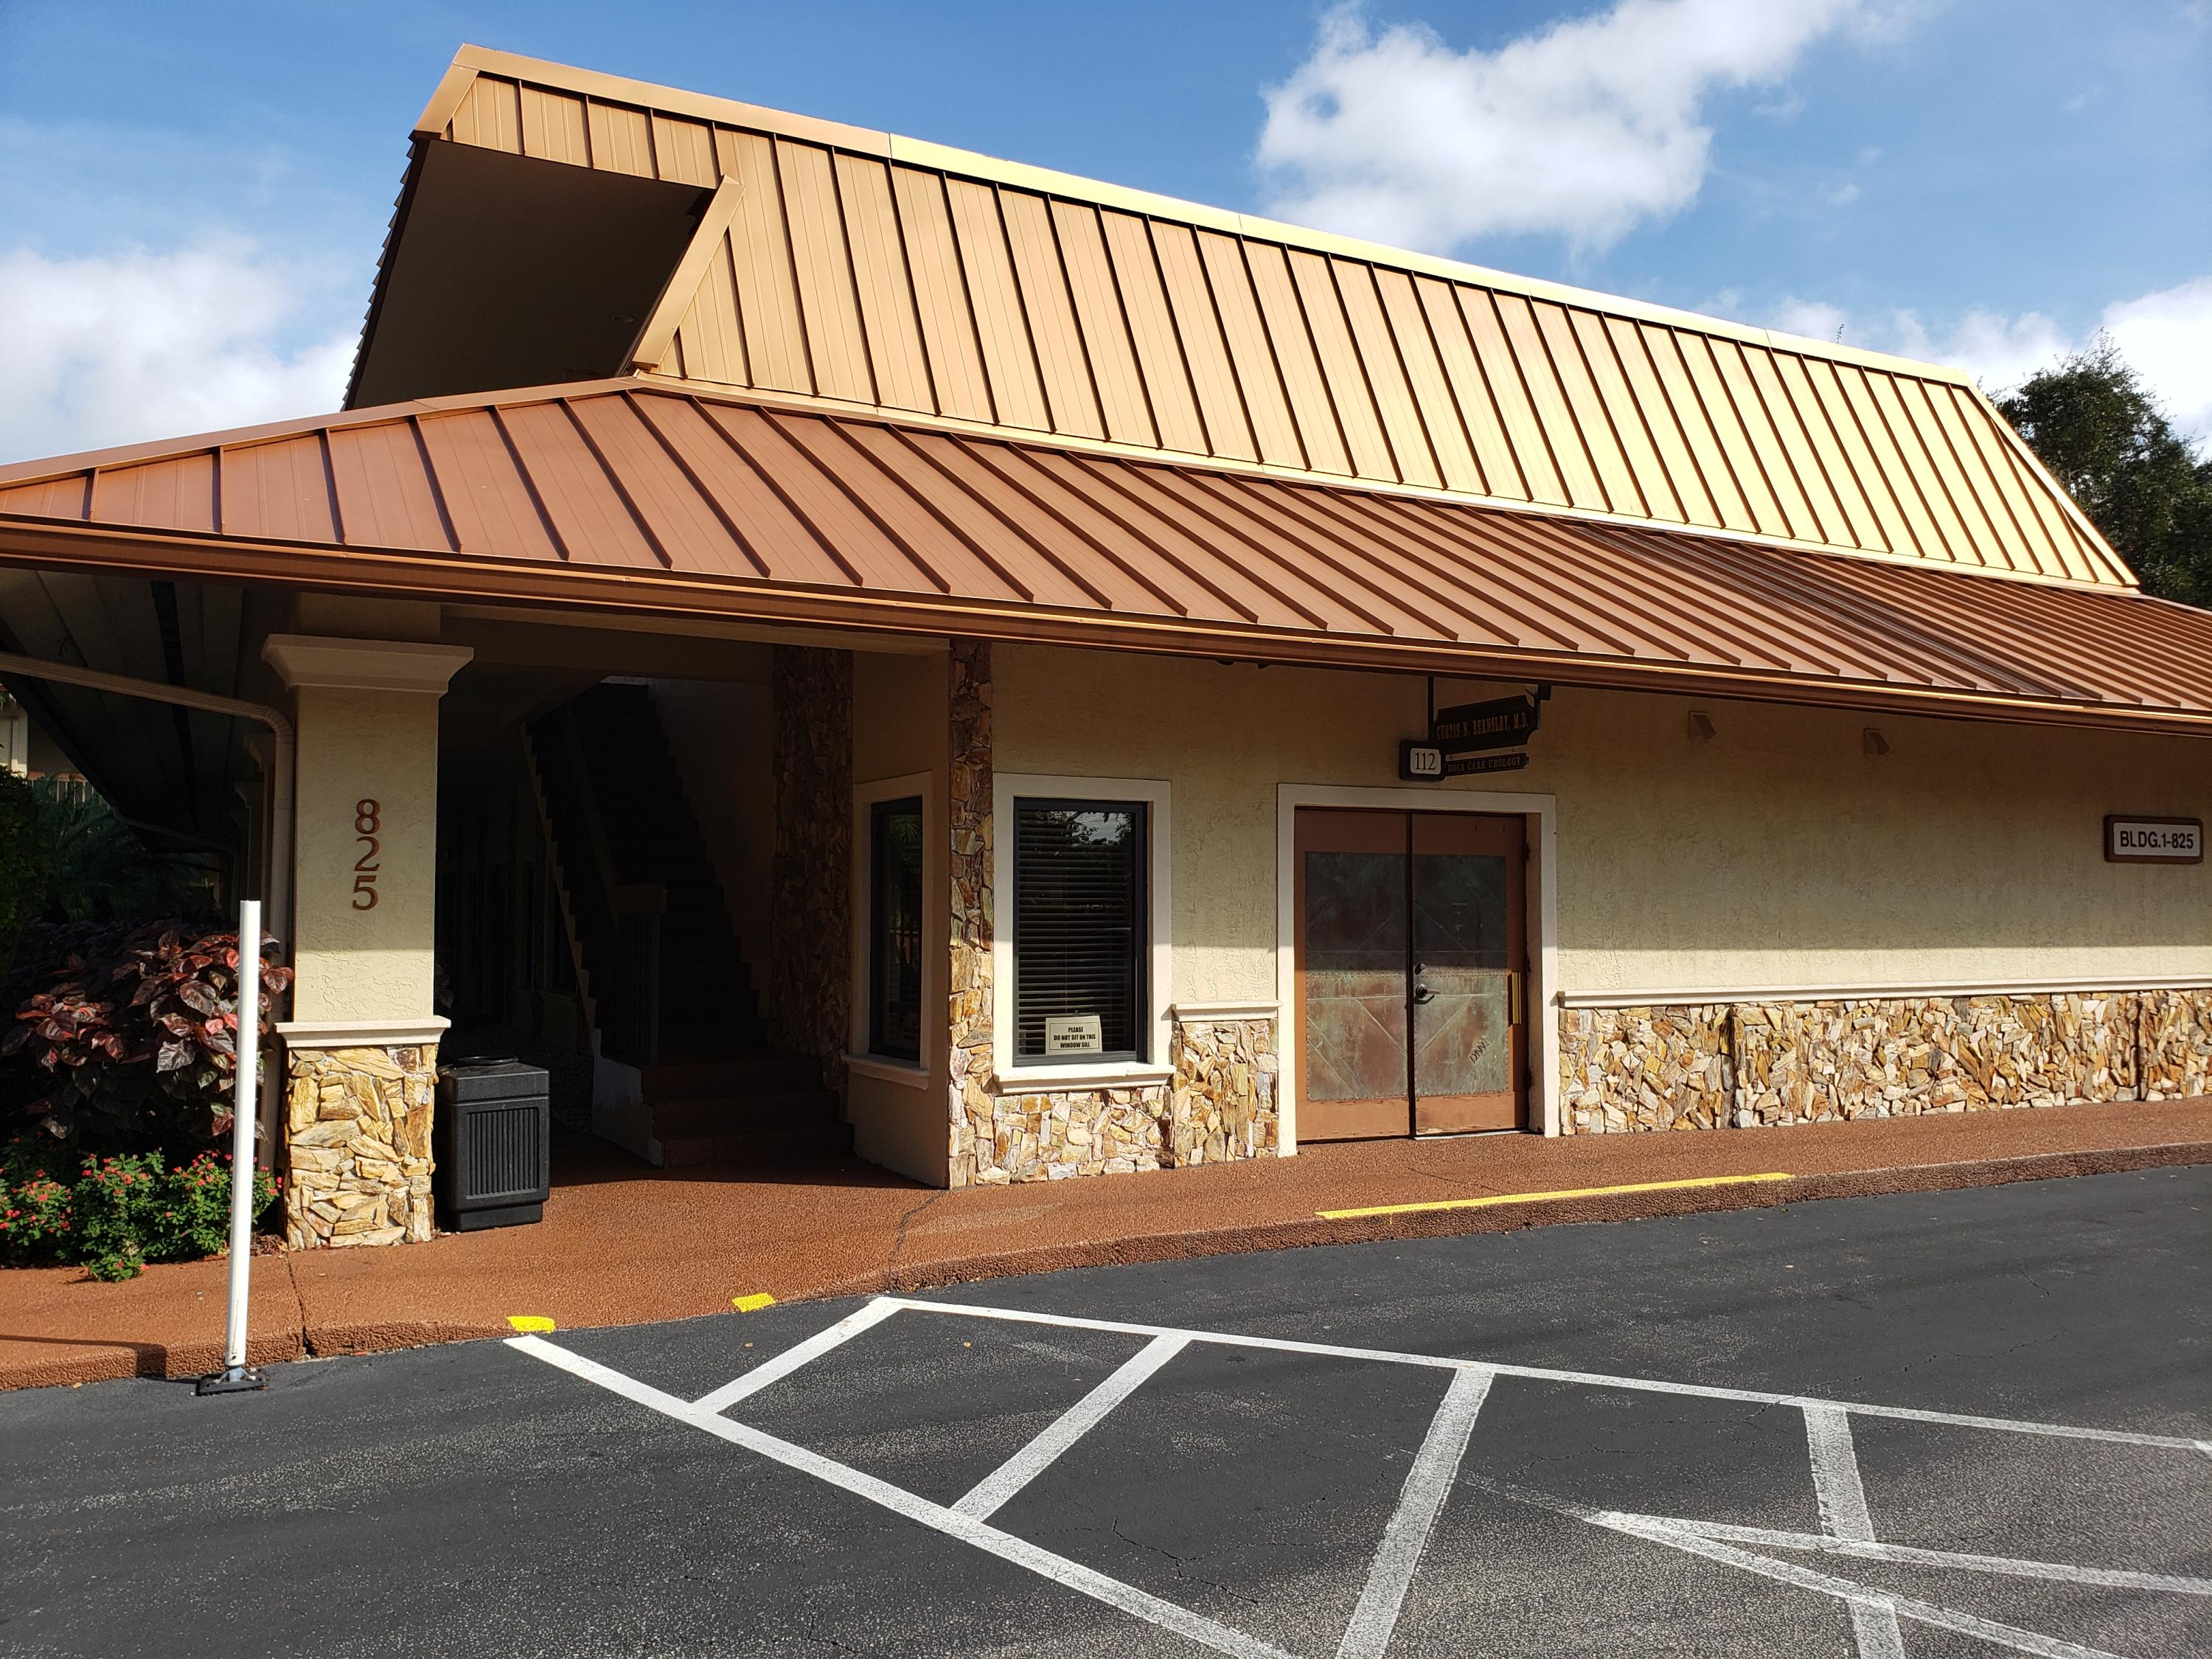 Bring your practice to the best location in Boca Raton! Directly across from Boca Raton Regional Hospital in beautiful Belle Terre. Fully built out medical offices, currently a urology facility. Suites 111 (+-1700sf) and 112 (+-2200sf) are adjoining and can be purchased or leased together or separately. Together discounted to $1,400,000.00, or separately Unit 11 - $700,000.00, Unit 112 $800,000.00. Ample parking, easy access and beautifully landscaped development. Very few units come available in this complex, act now! Leasing at $32.00sf +NNN fees.